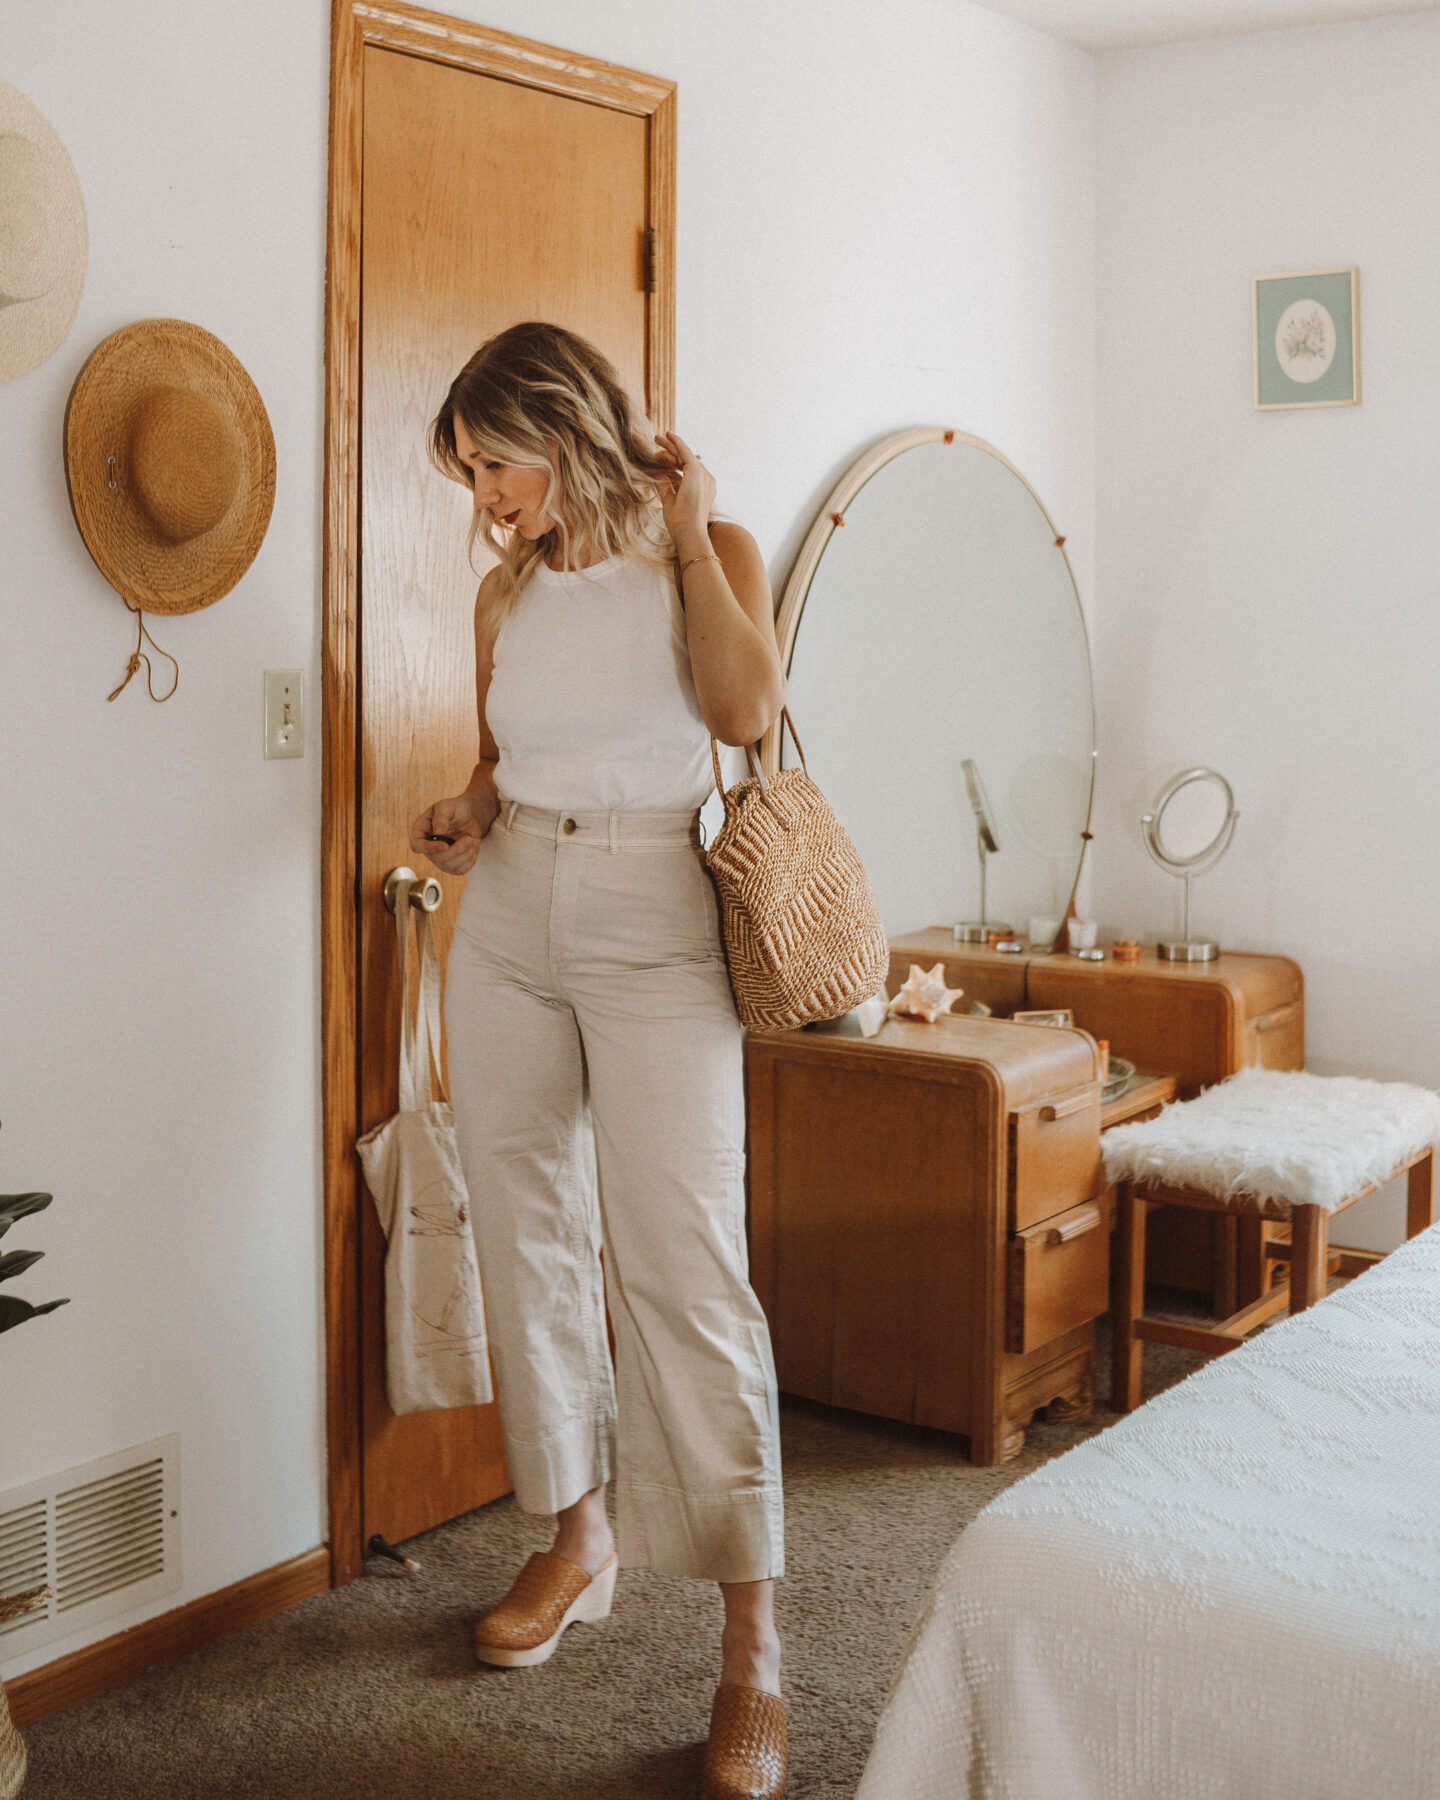 How to Style Wide Leg Pants + 6 Outfit Ideas, everlane lightweight wide leg crop chino, cut out tank, everlane woven clogs